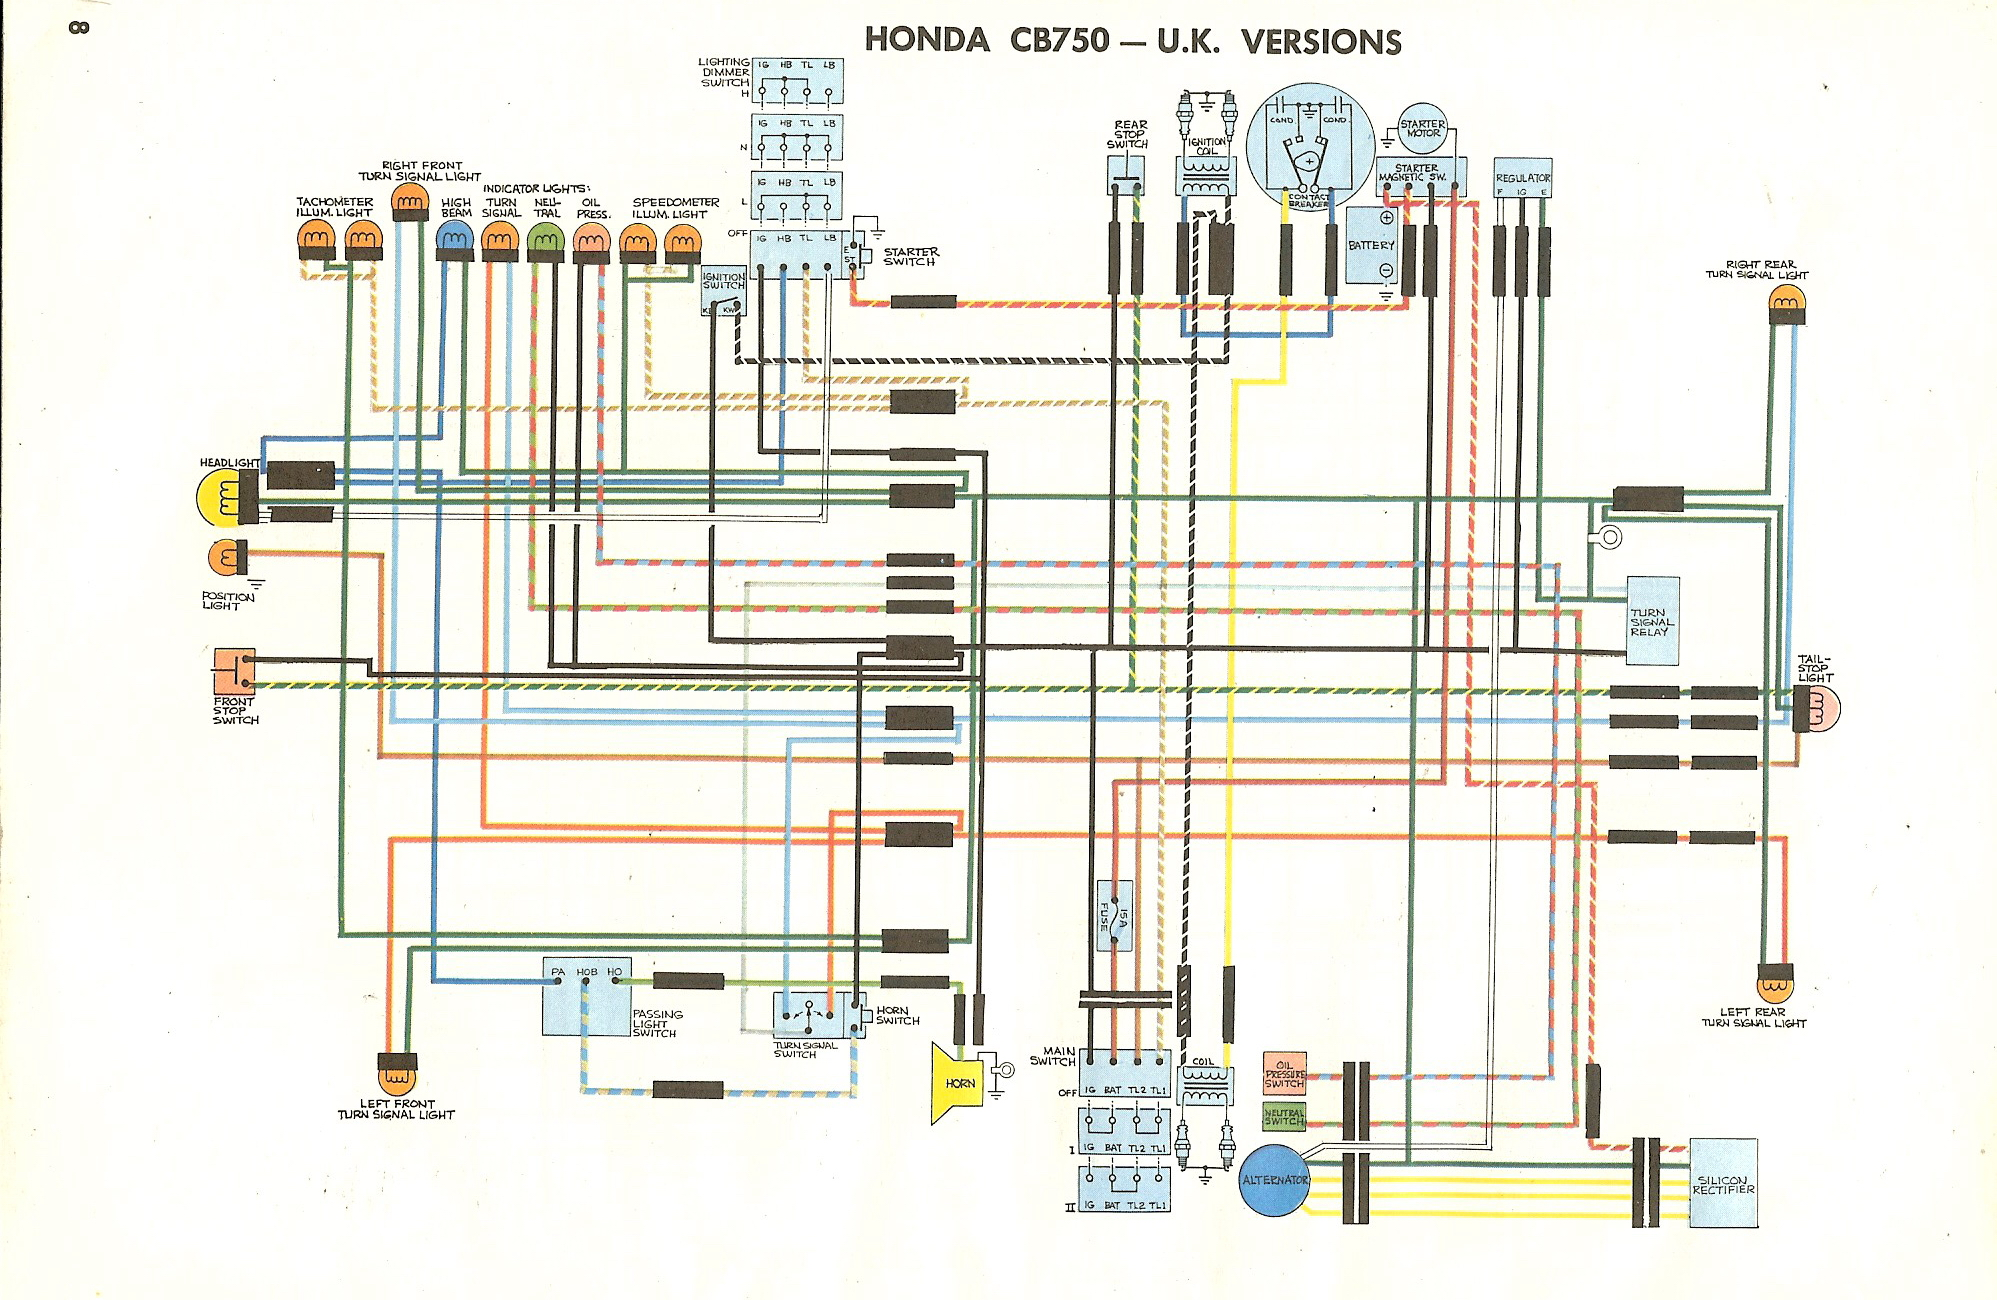 honda ct90 wiring schematic wiring diagramct90 wiring diagram best part of wiring diagram1971 ct90 wiring diagram dd purebuild co \\\\